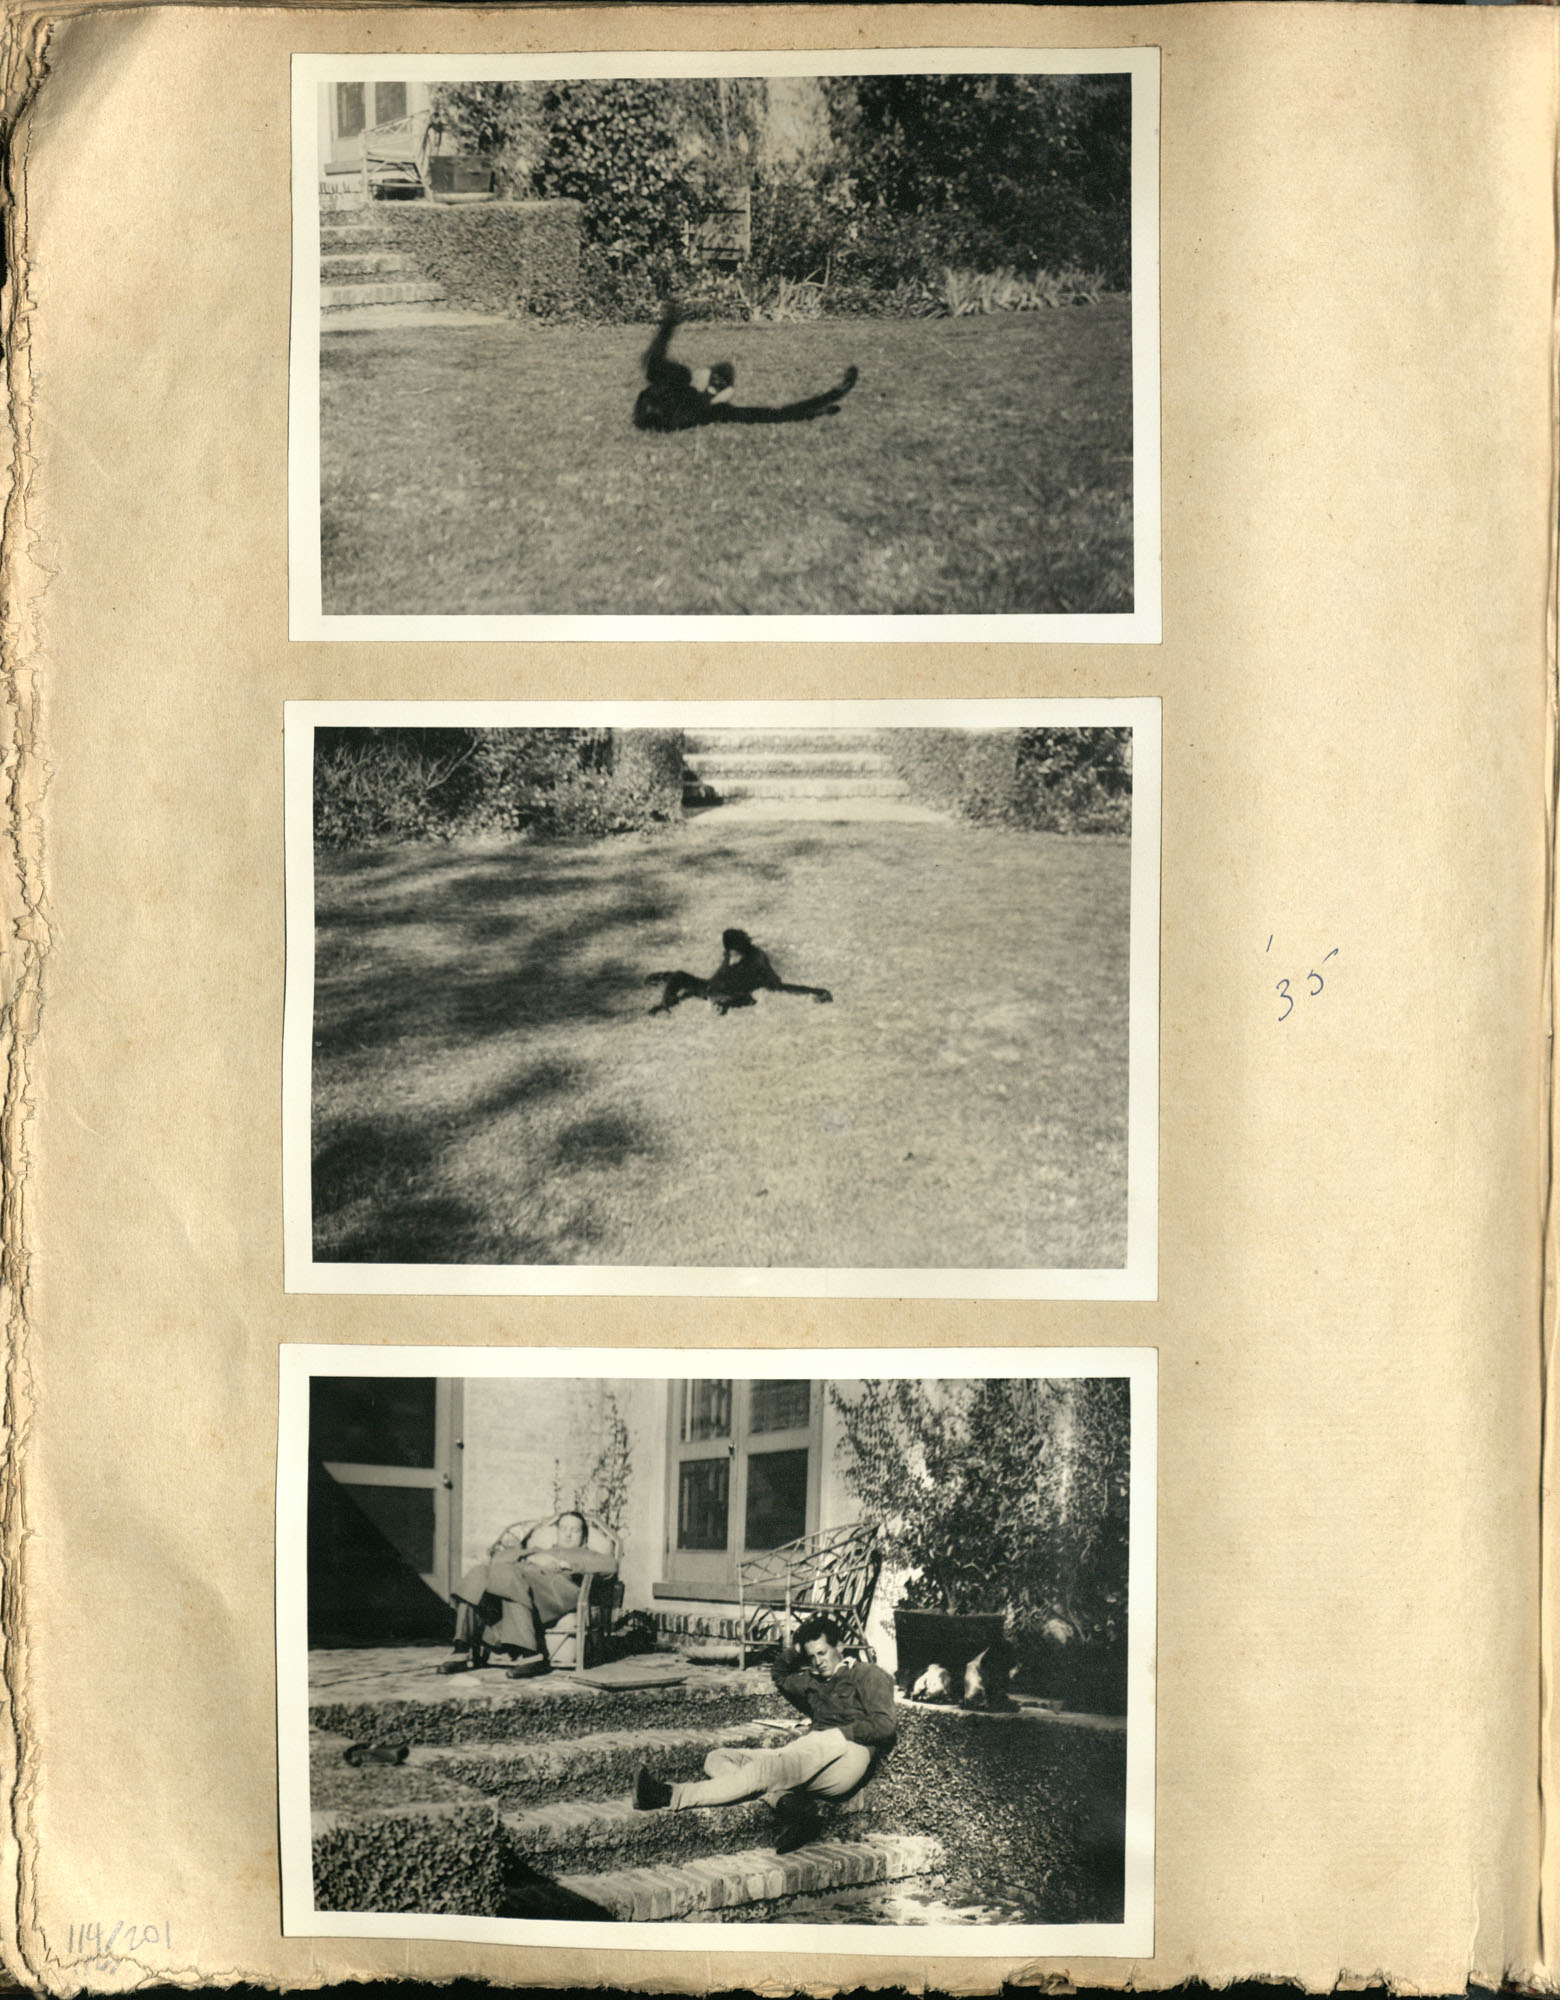 Early Medway and travels album, 1929-1937, page 114